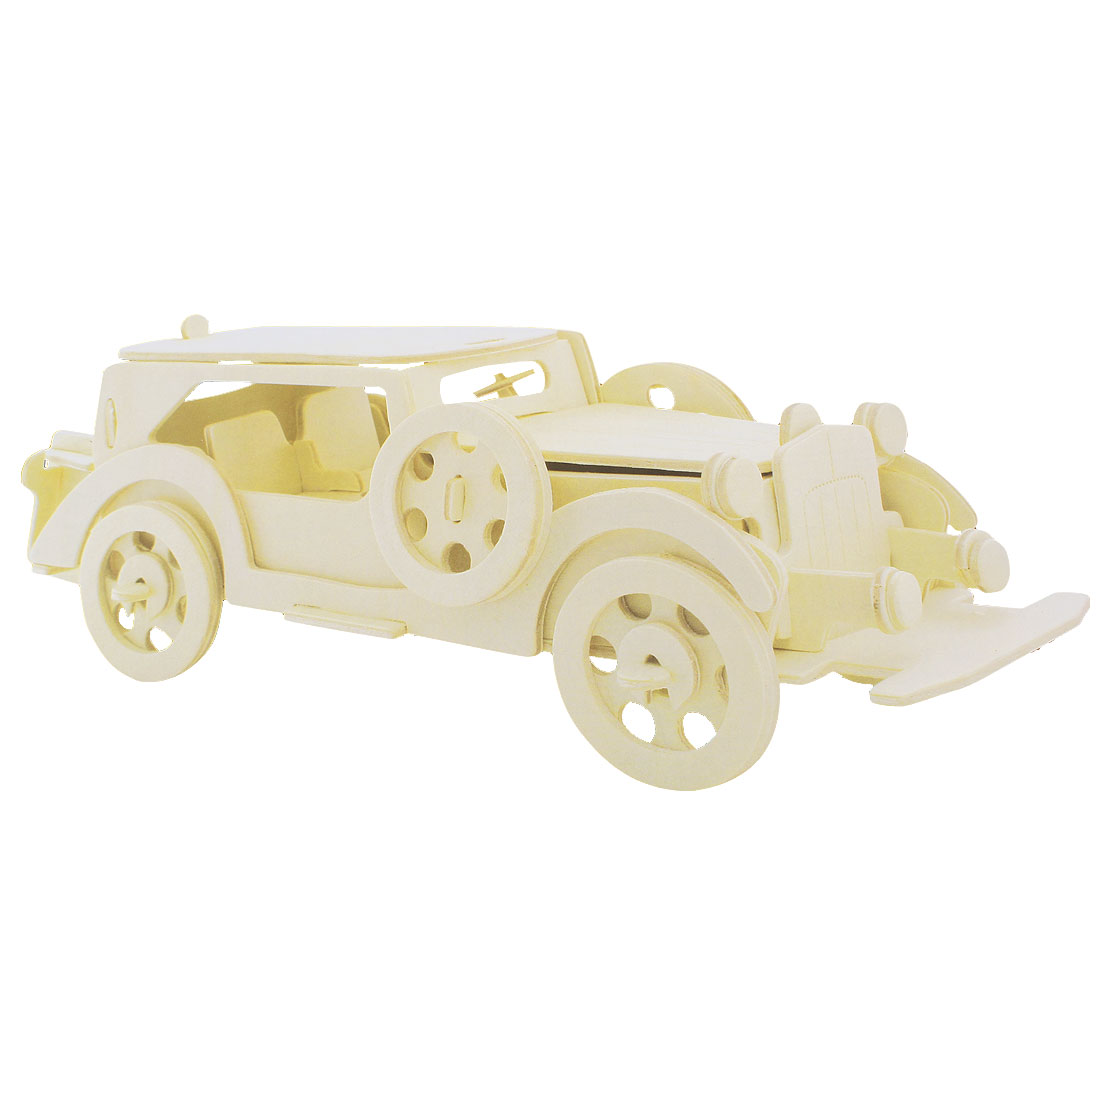 Cubic Rolling Automobile Tourer Car Model Collecting Wooden Puzzle Toy